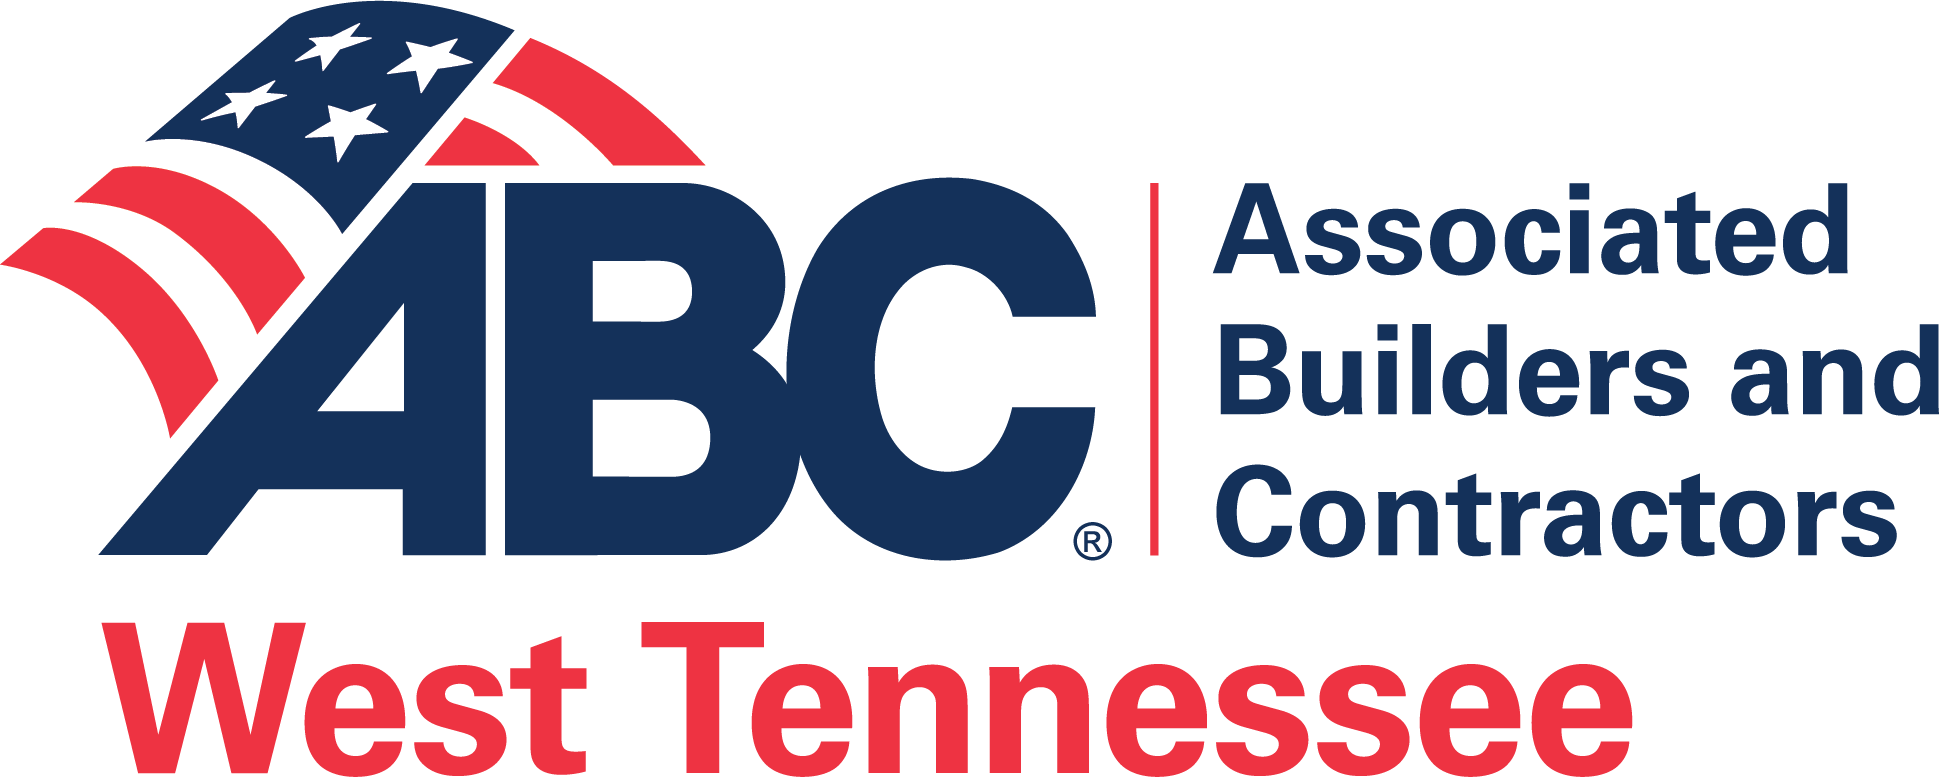 ABC of West Tennessee